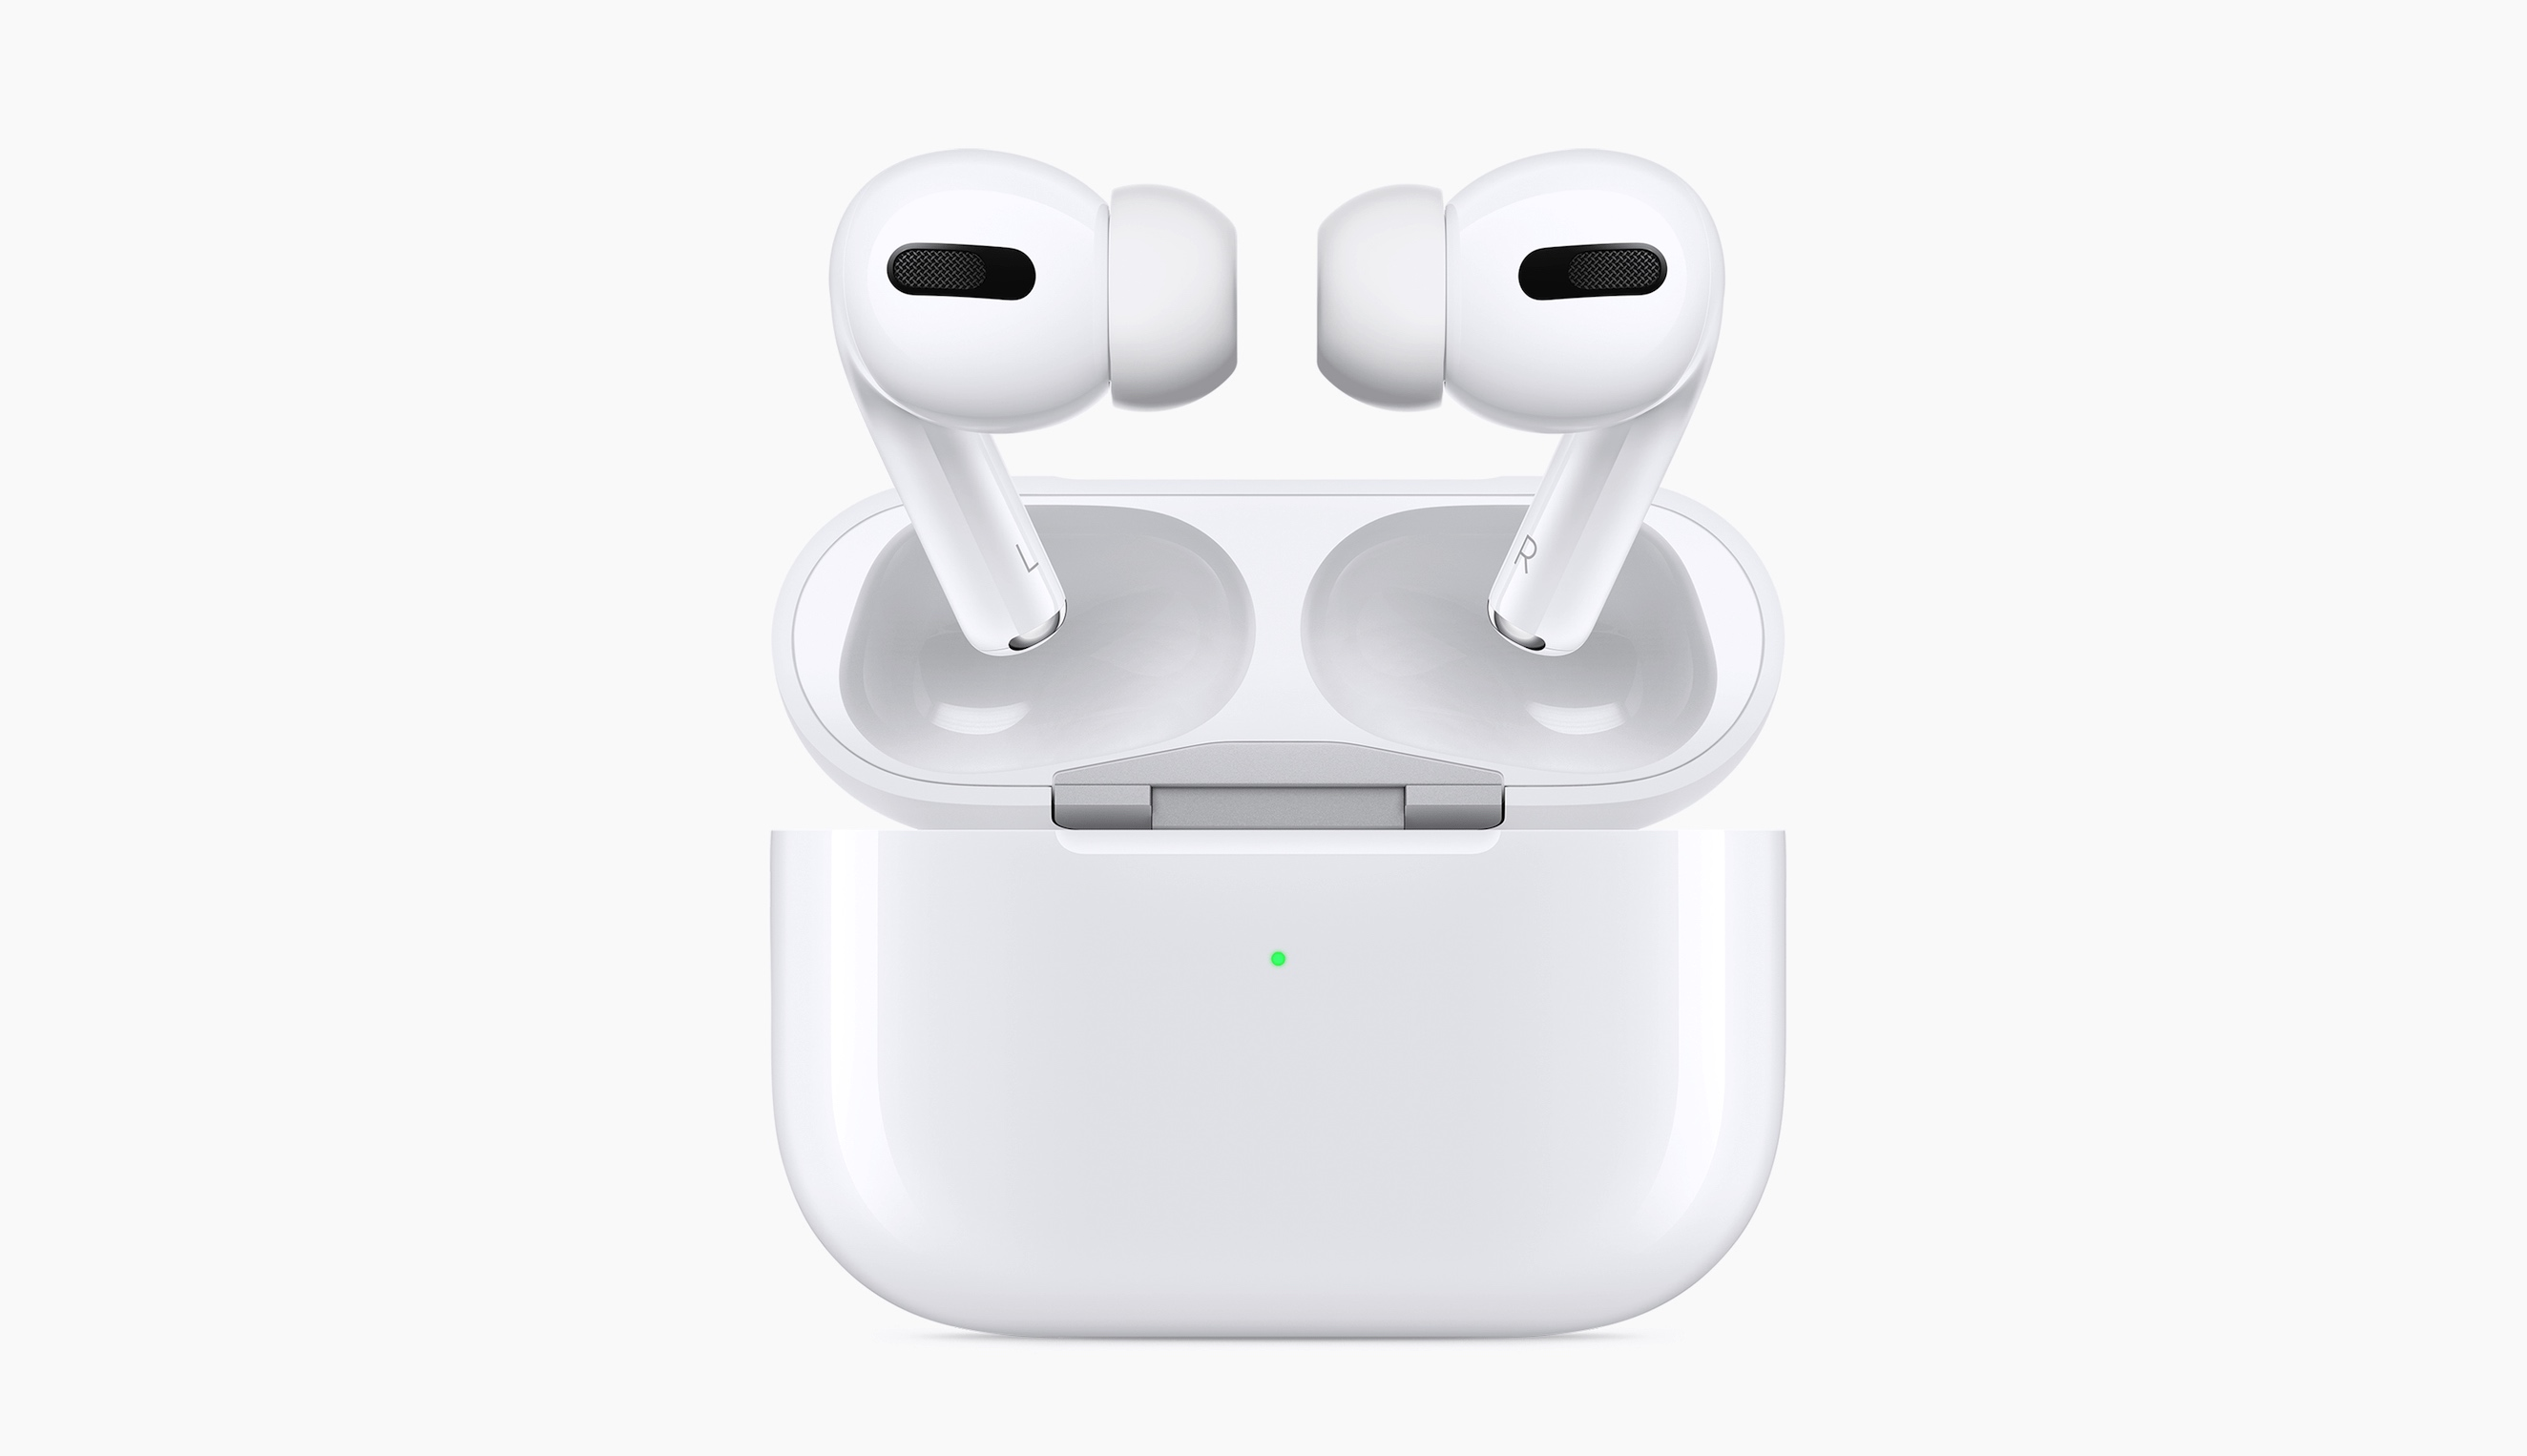 Apple Unveils New Airpods Pro With Noise Cancellation 9to5mac